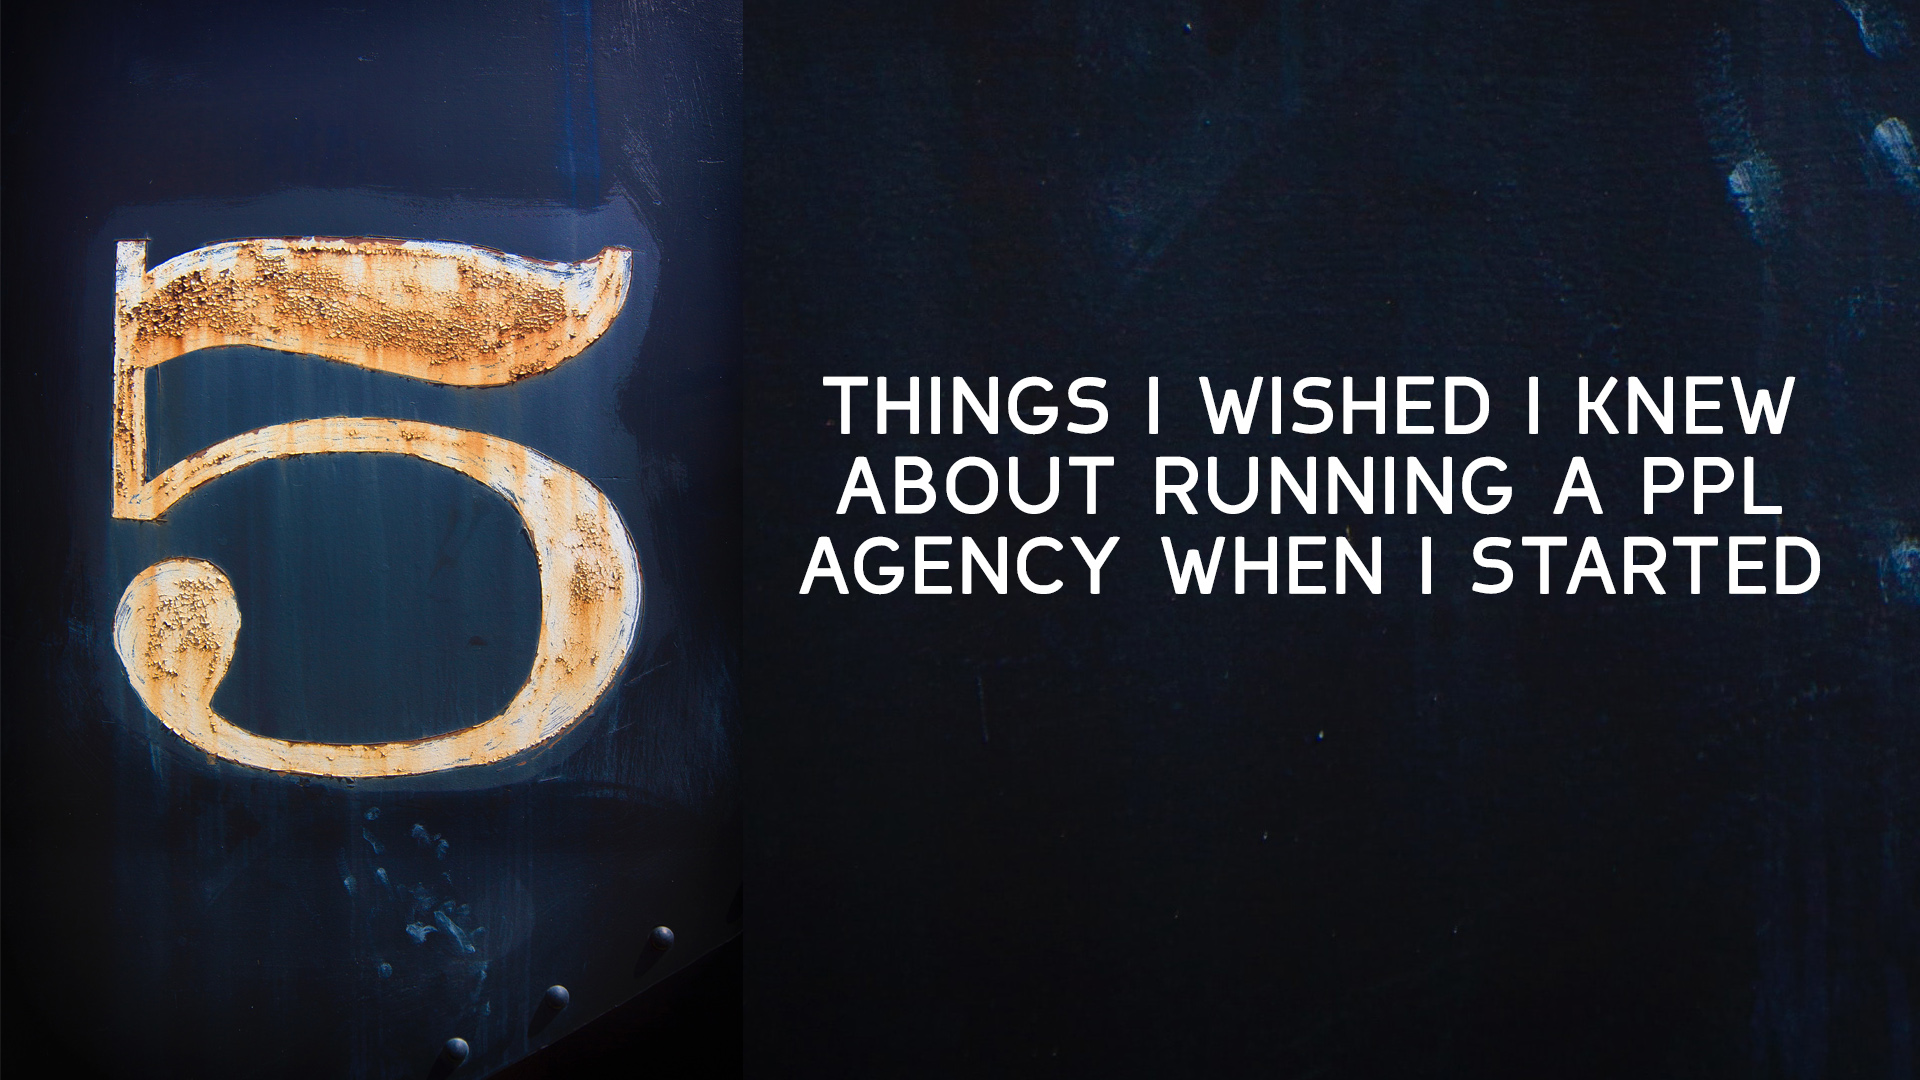 5-things-i-wished-i-knew-about-running-a-ppl-agency